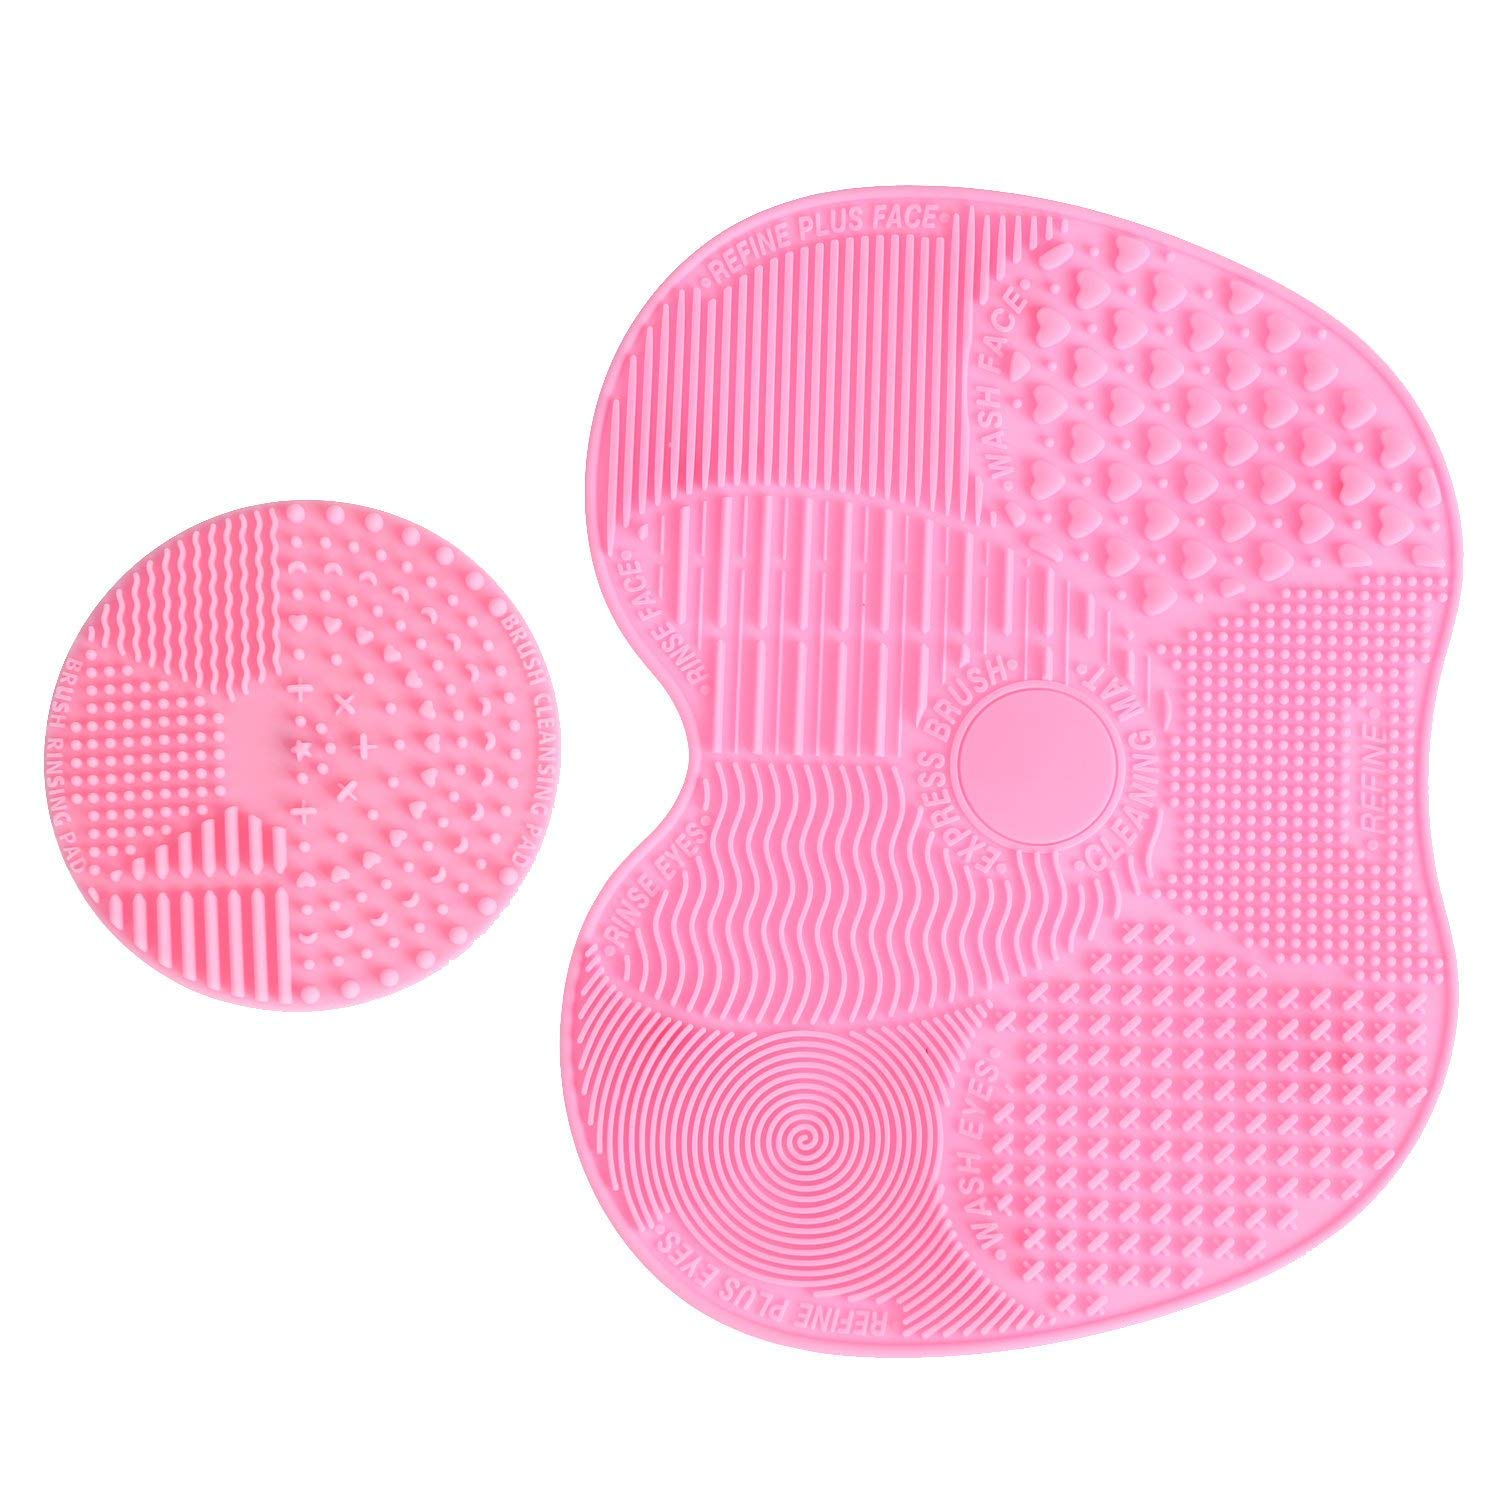 LEADSTAR Makeup Brush Cleaning Mat, Silicon Makeup Brush Cleaner Pad, 1 Apple Shaped Large Mat + 1 Round Shaped Mini Mat (Pink)